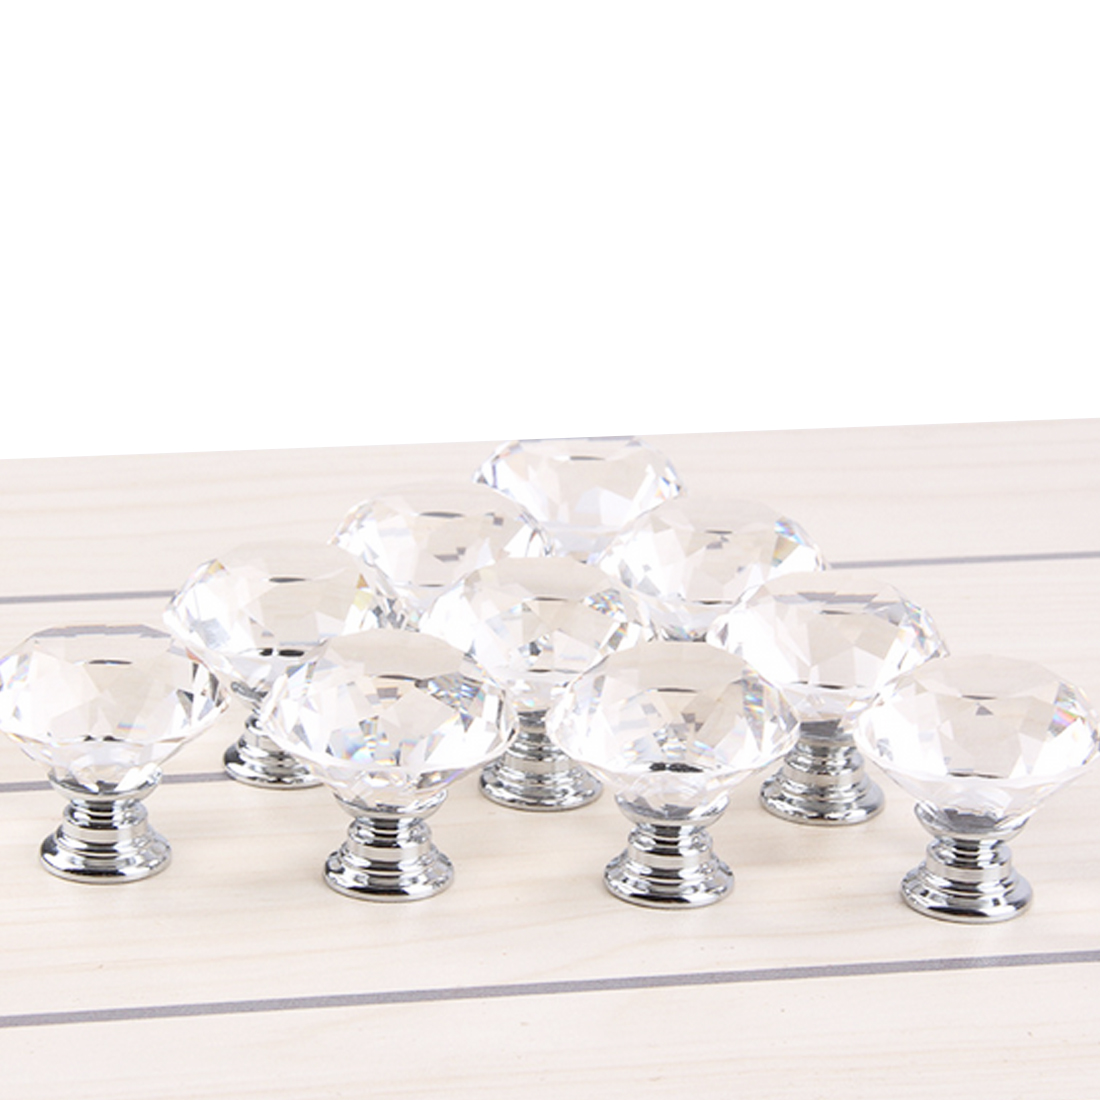 Hot!10 Pcs 30mm Diamond Shape Crystal Glass Door Handle Knob for furniture Drawer Cabinet Kitchen Pull Handles Knobs Wardrobe 40mm diamond shape crystal glass door handle knob with screws for furniture drawer cabinet kitchen pull handle wardrobe